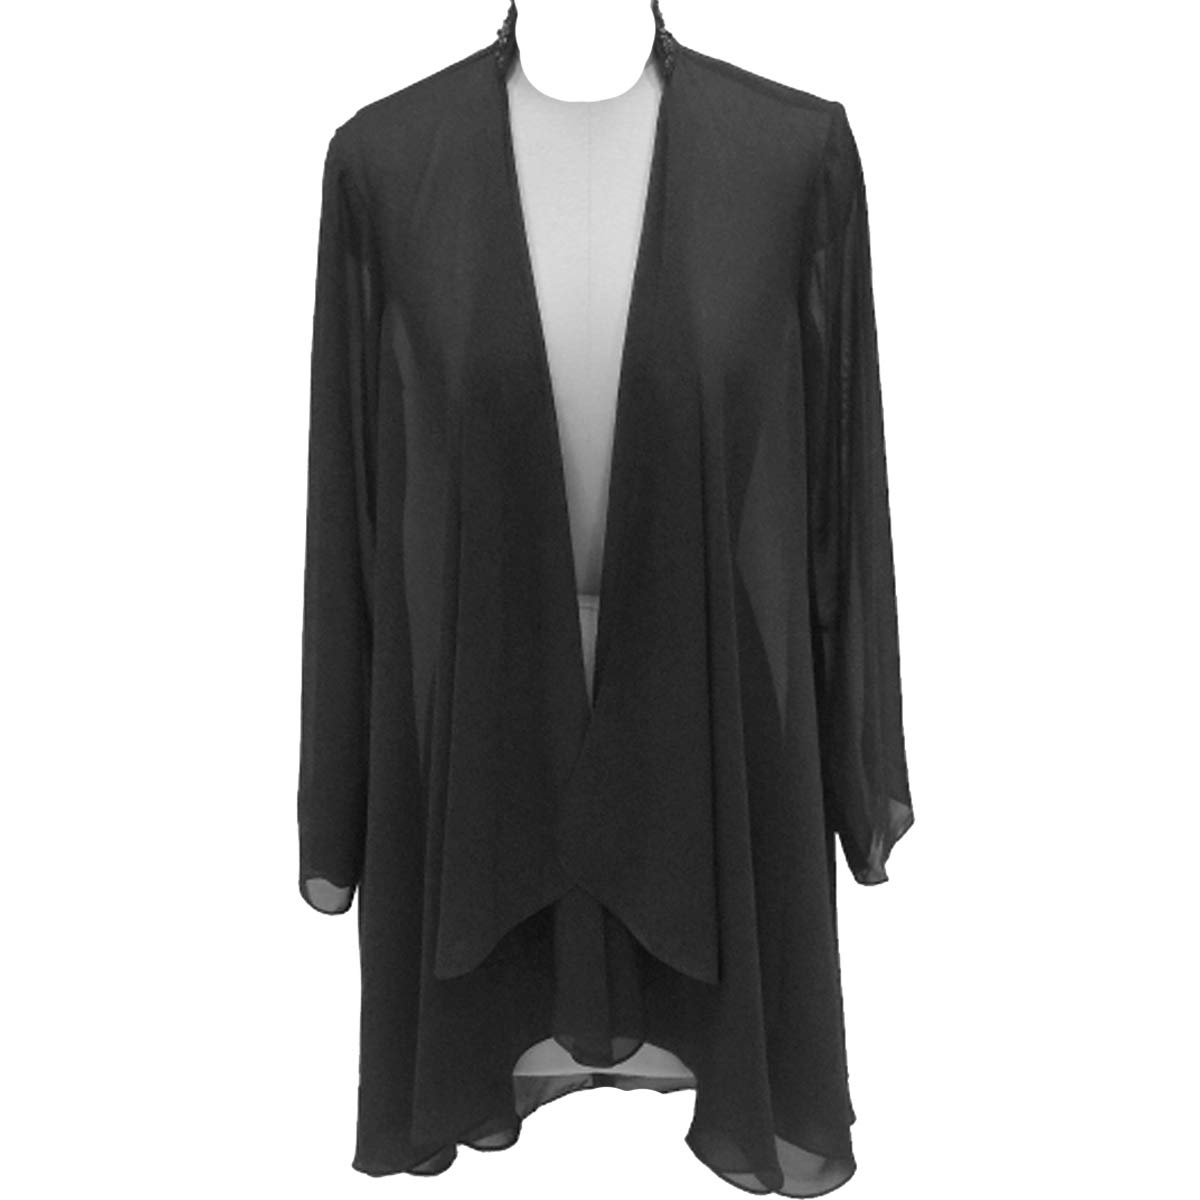 Vintage Coats & Jackets | Retro Coats and Jackets Flybridal Womens Chiffon Shawl Wrap Coats Open Front Cardigan Bolero Shrug Jackets with Beading $25.99 AT vintagedancer.com